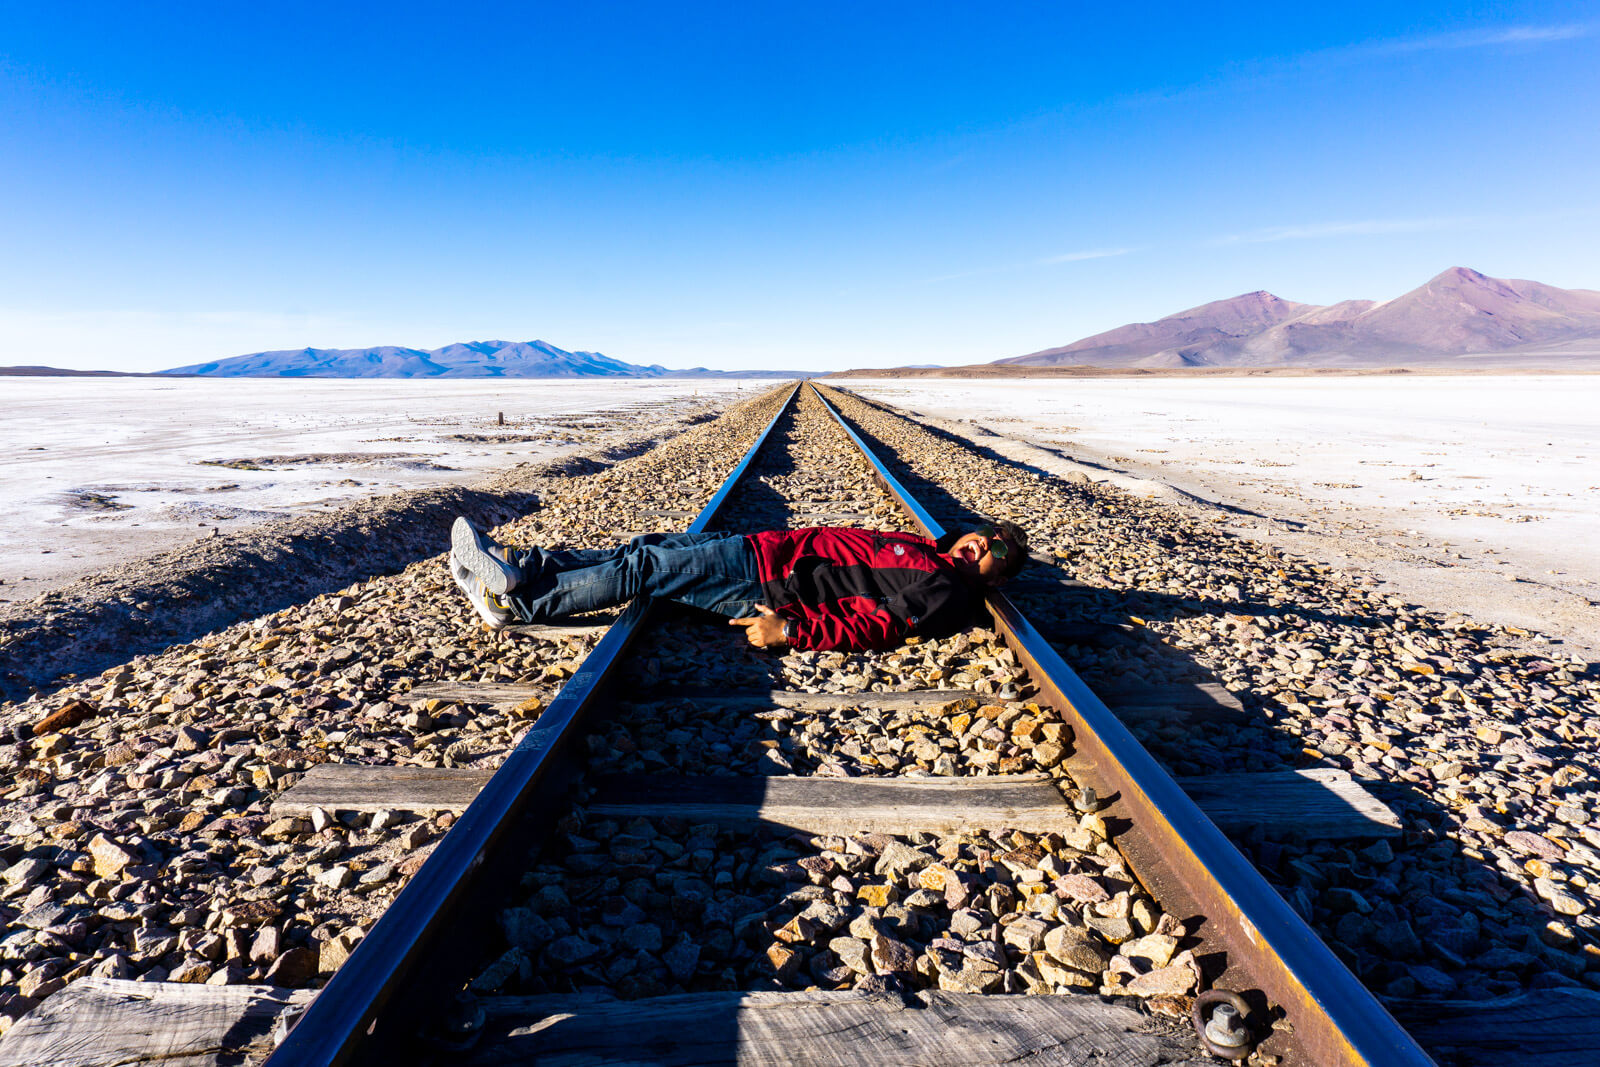 The Man of Wonders about to be killed at the train tracks of the Salar de Uyuni